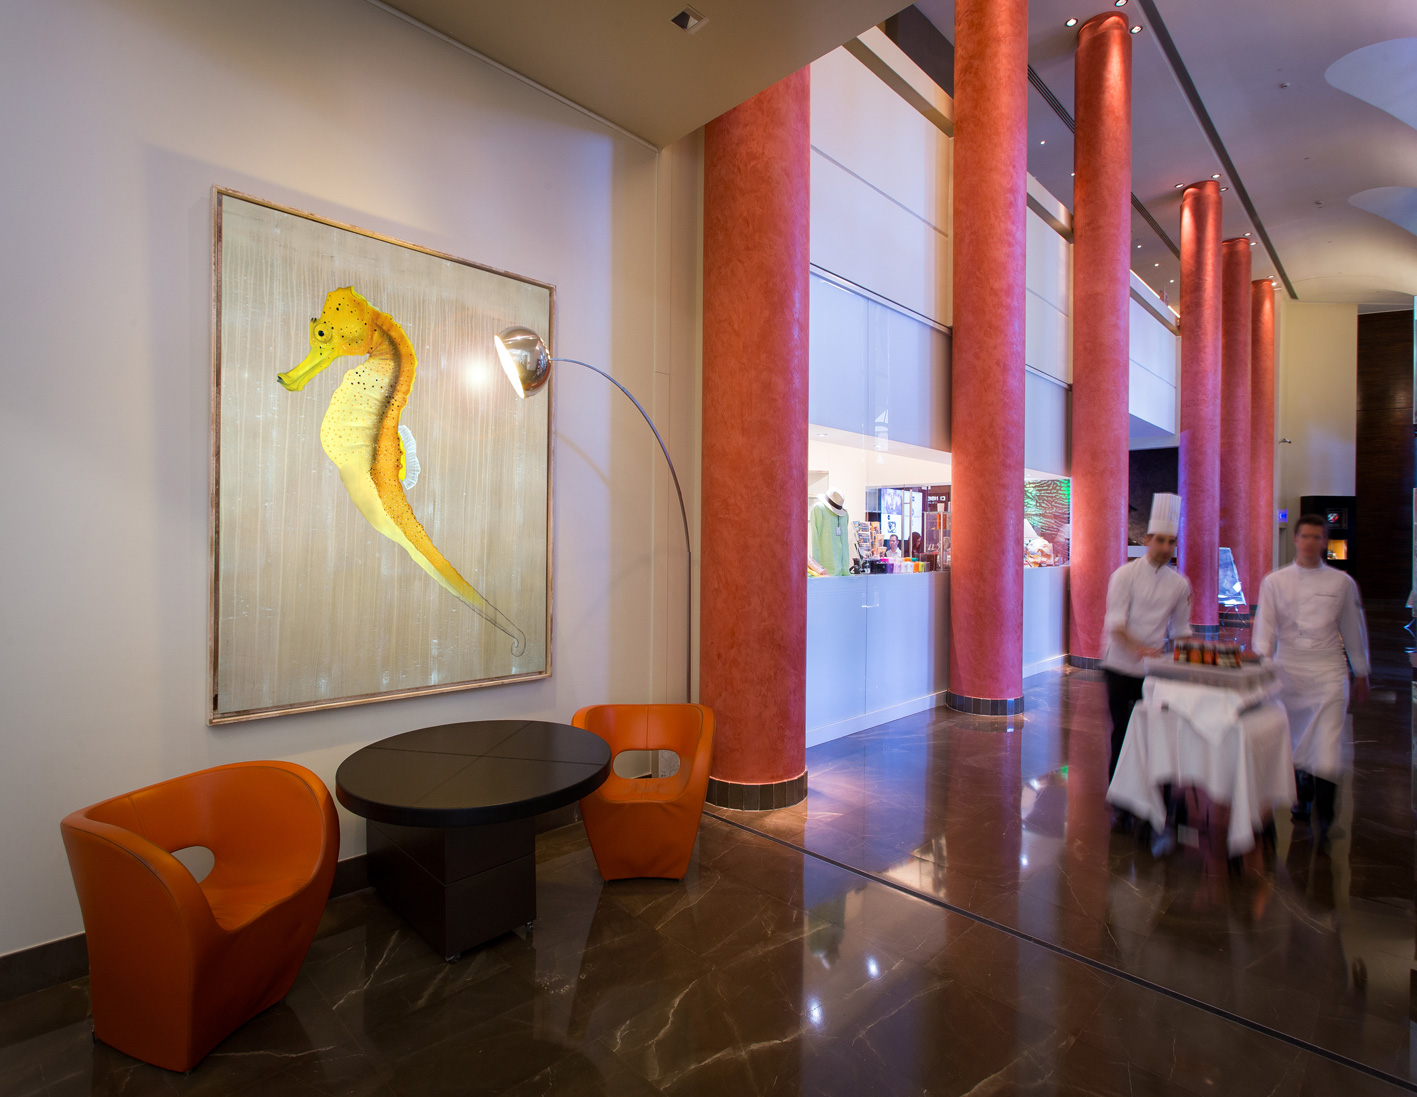 HOTEL MONTE-CARLO BAY seahorse-threatened-endangered-extinction Thierry Bisch painter animals painting art decoration hotel design interior luxury nature biodiversity conservation